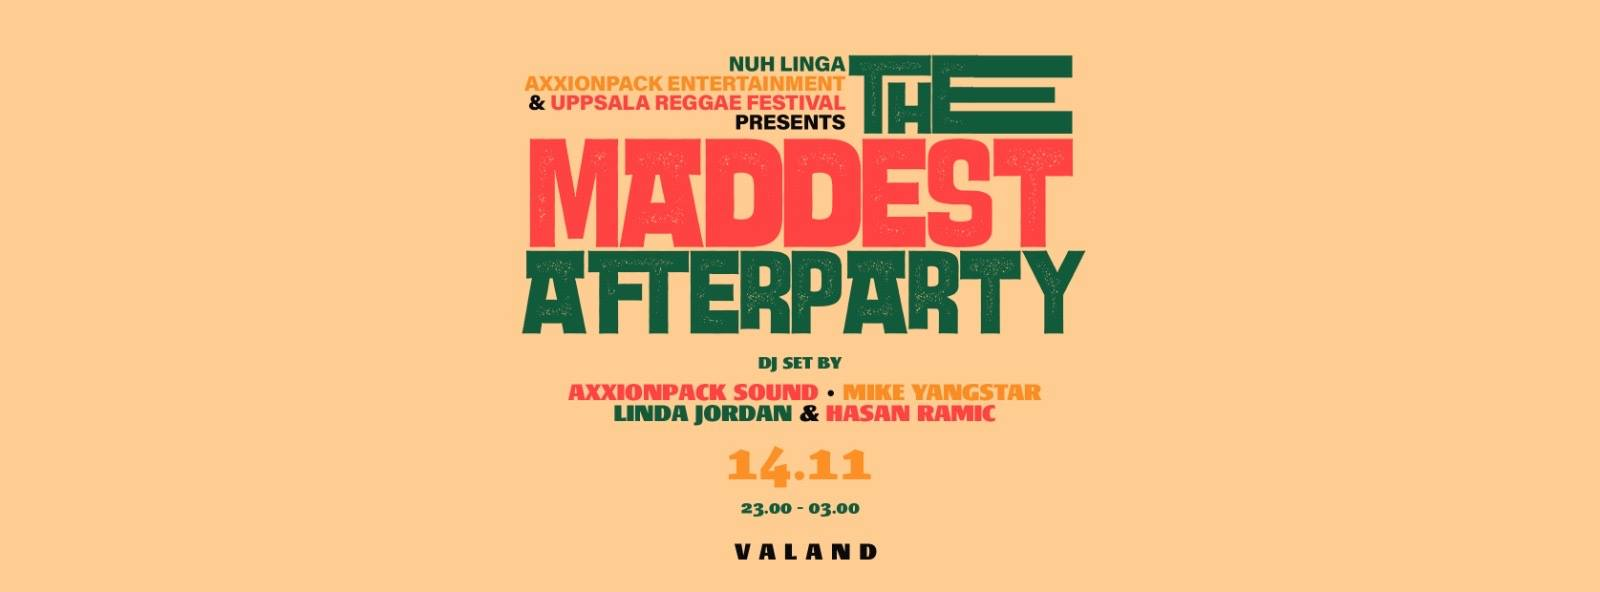 KLUBB: The Maddest Afterparty - Valand nattklubb - GÖTEBORG